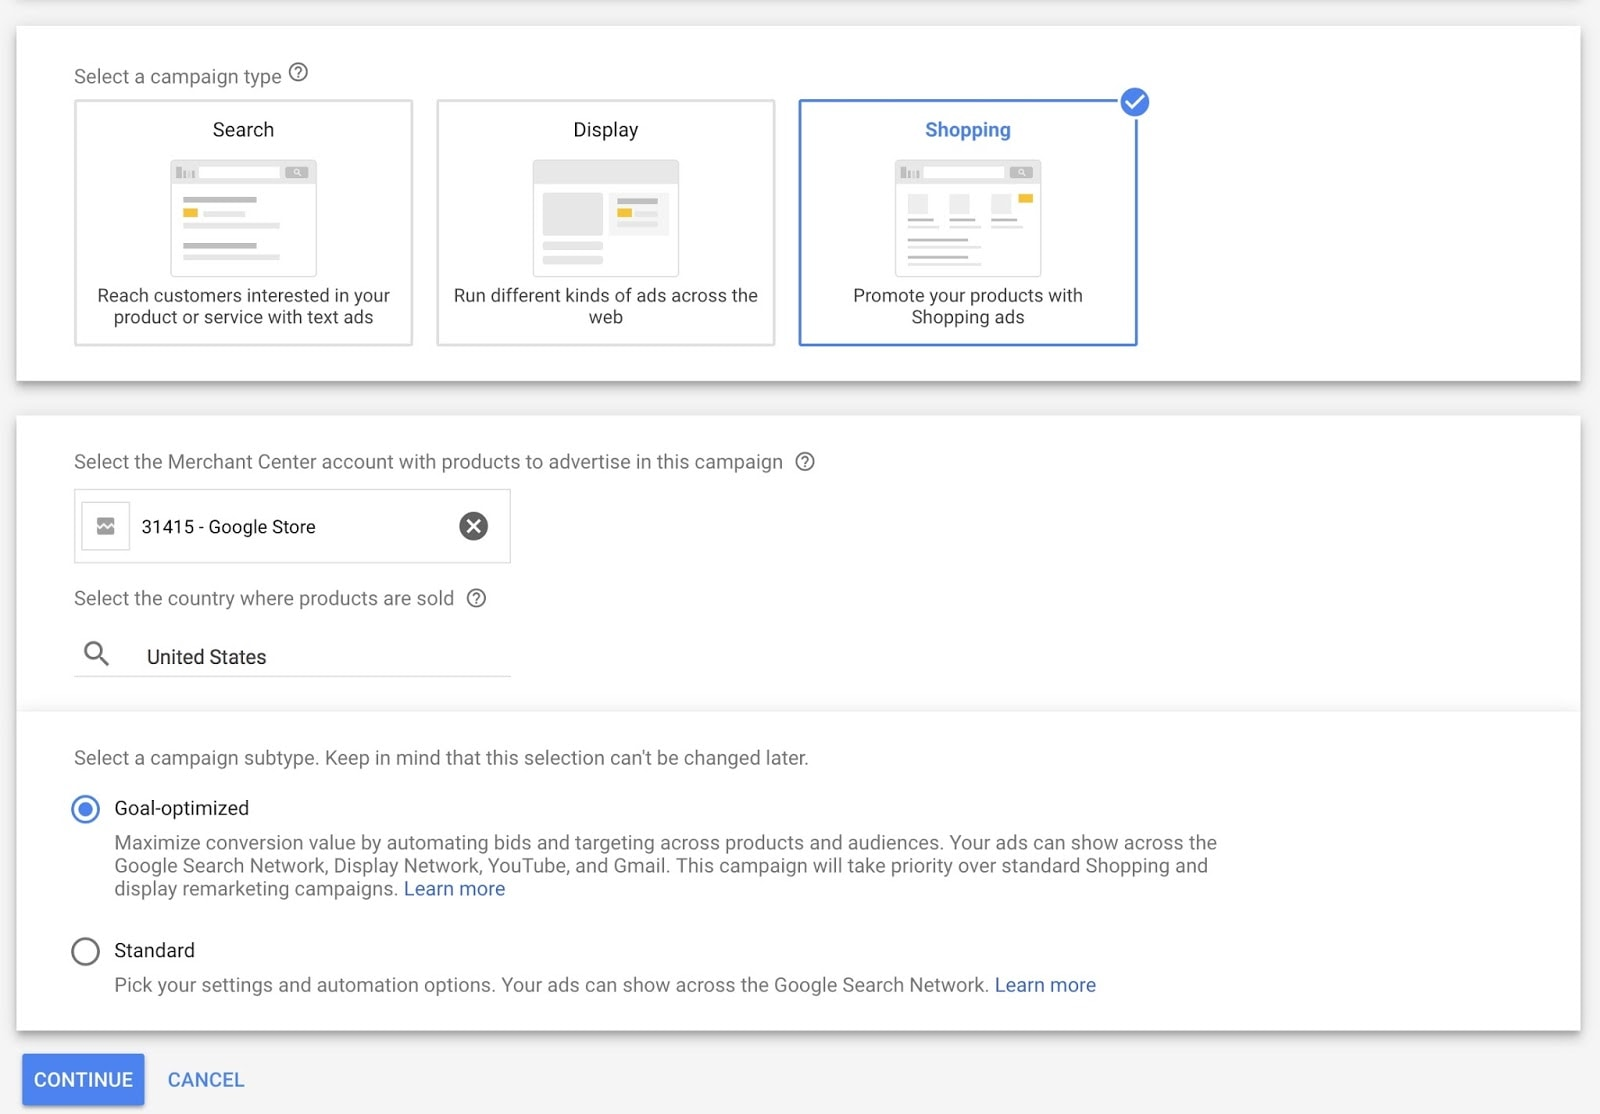 New Google AdWords Campaigns Use Machine Learning to Maximize Conversion Value